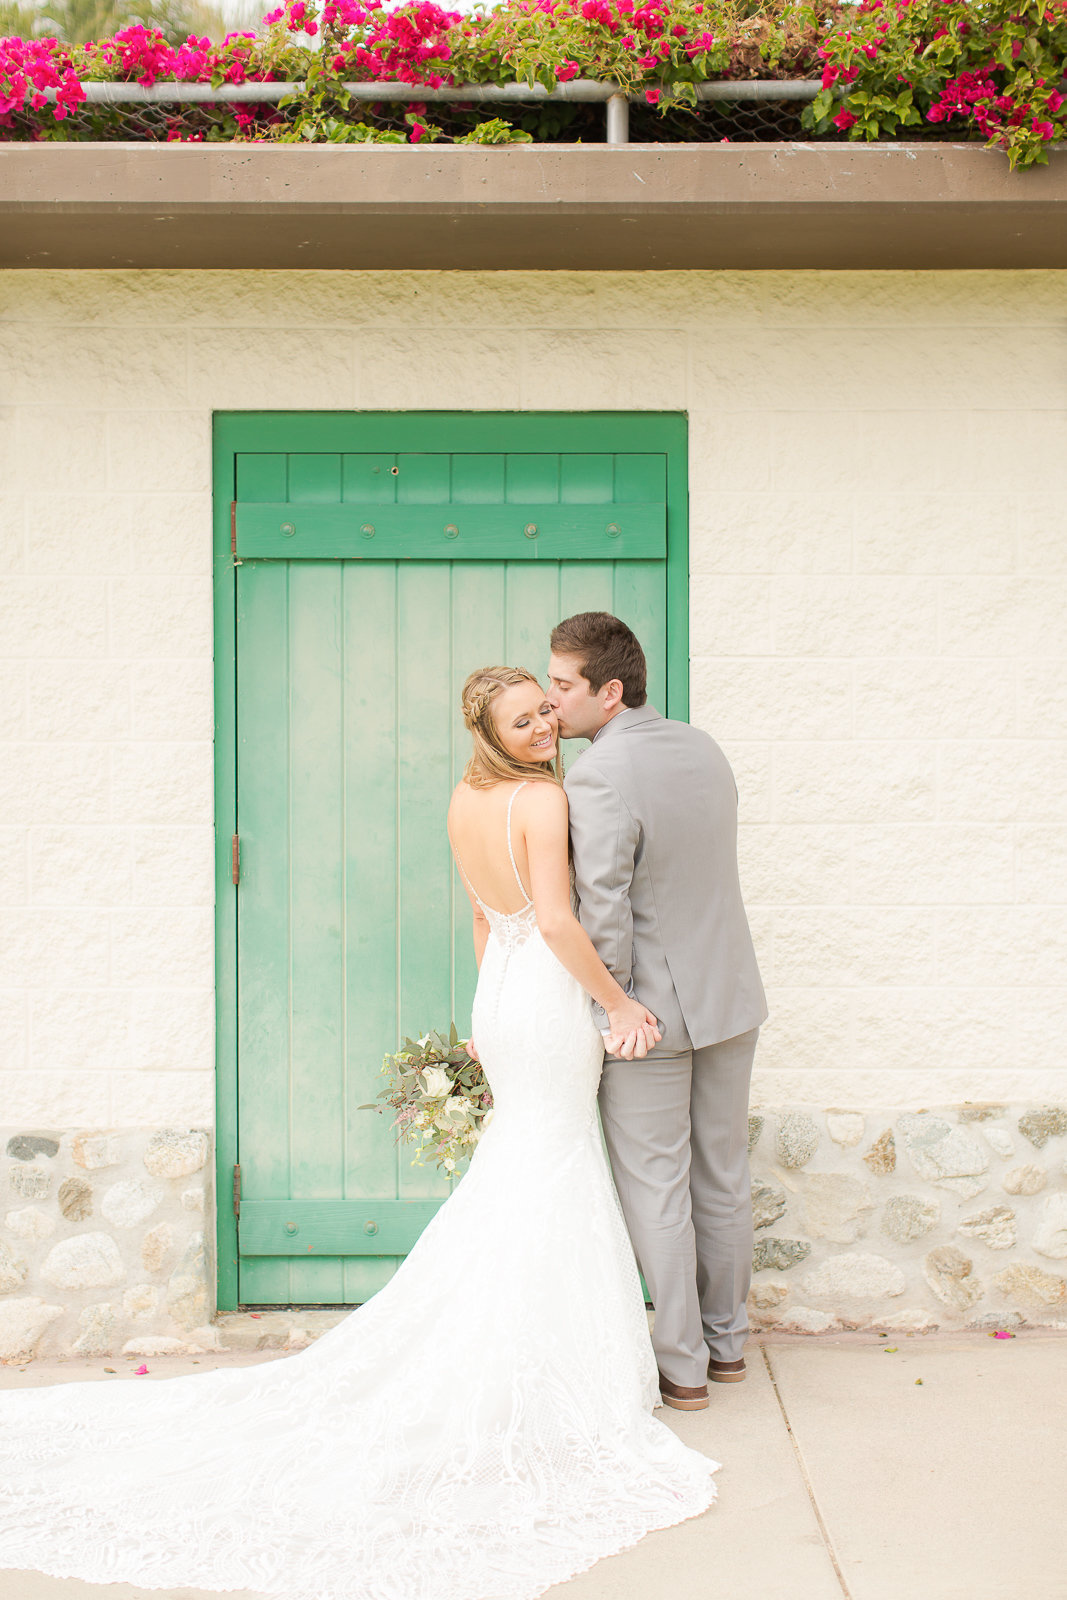 Bride and Groom Wedding Photo Ideas Theresa Bridget Photography Photo-411